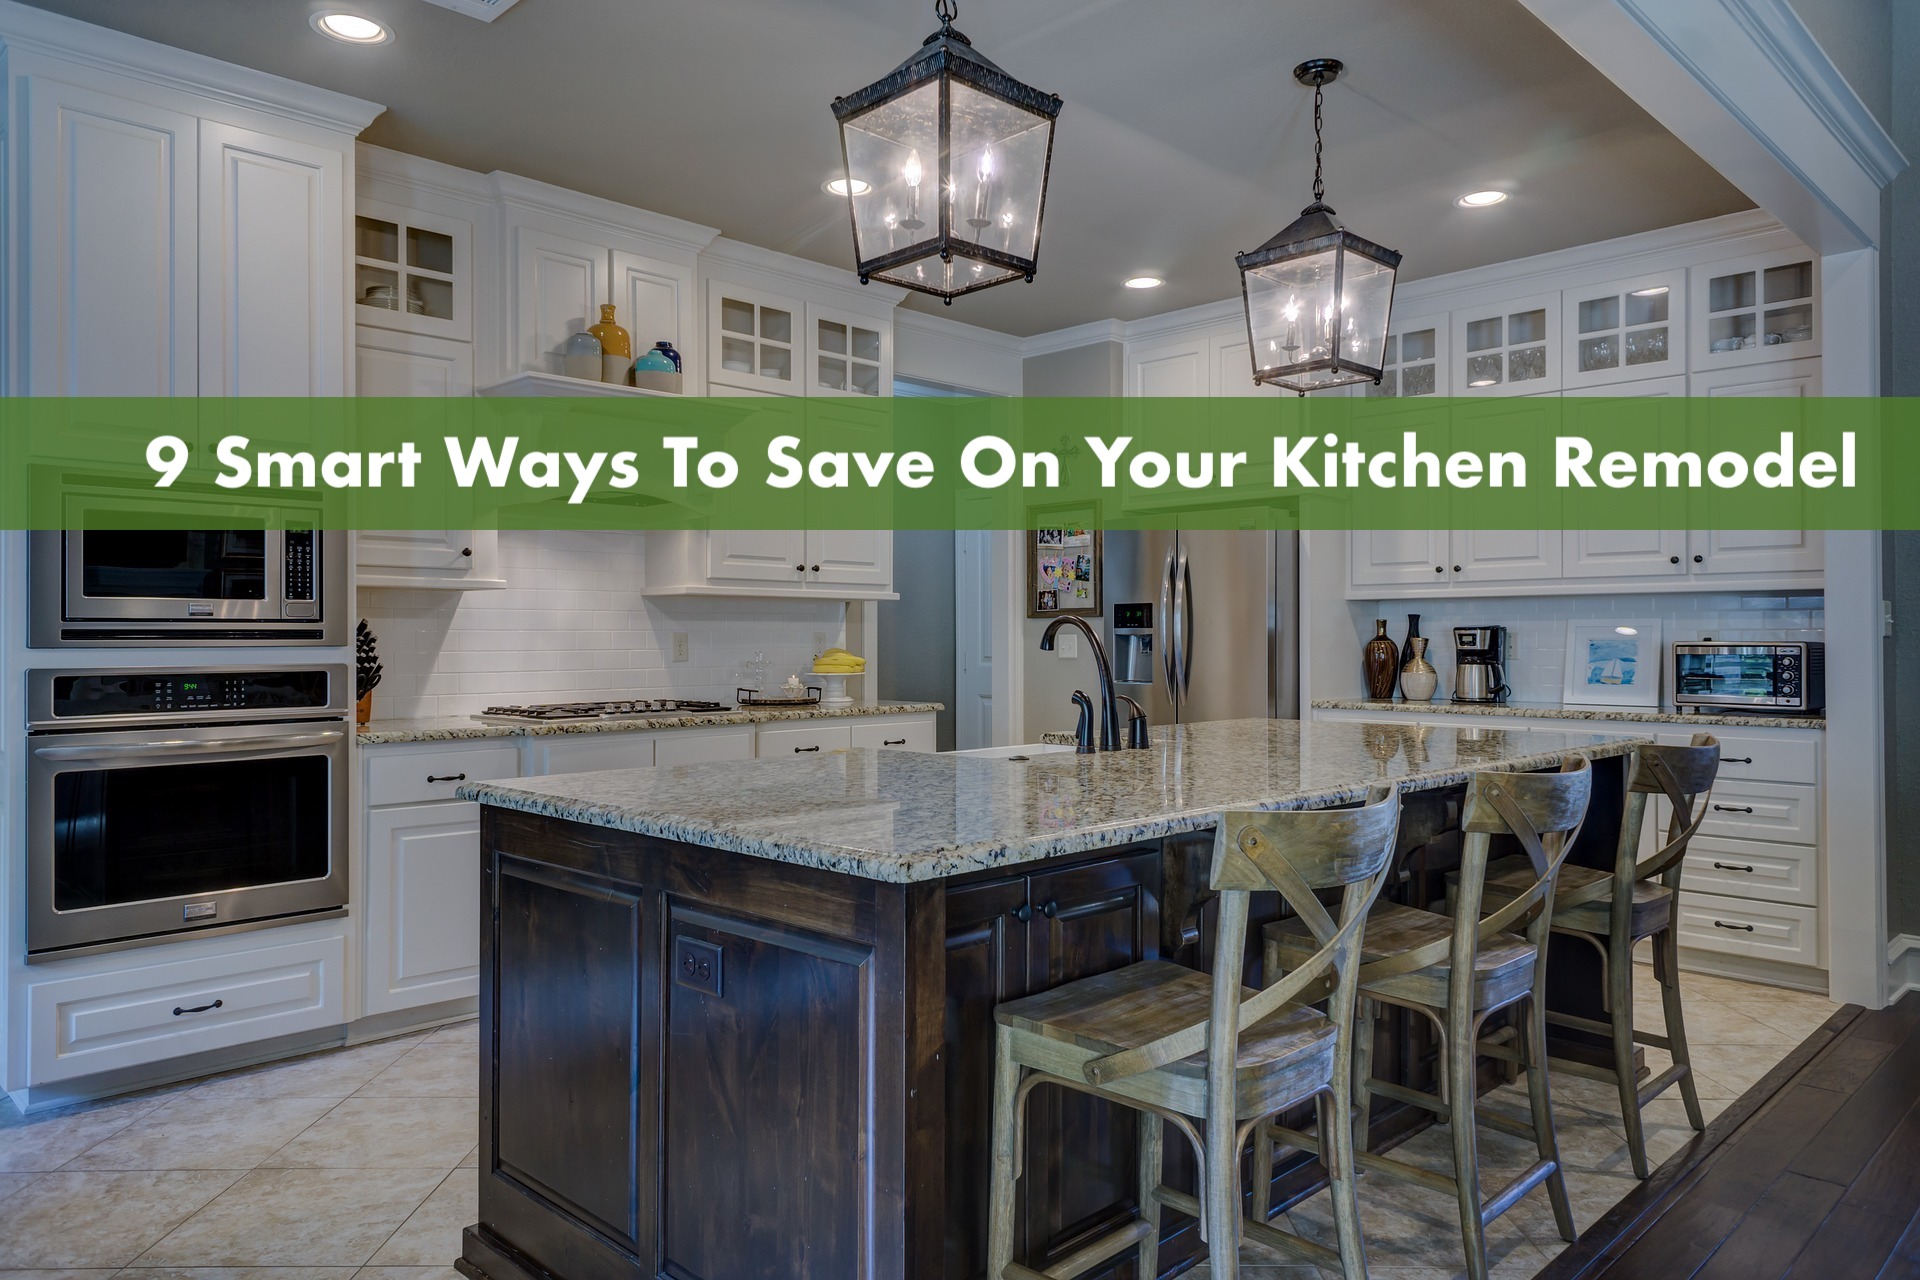 9 Smart Ways To Save On Your Kitchen Remodel